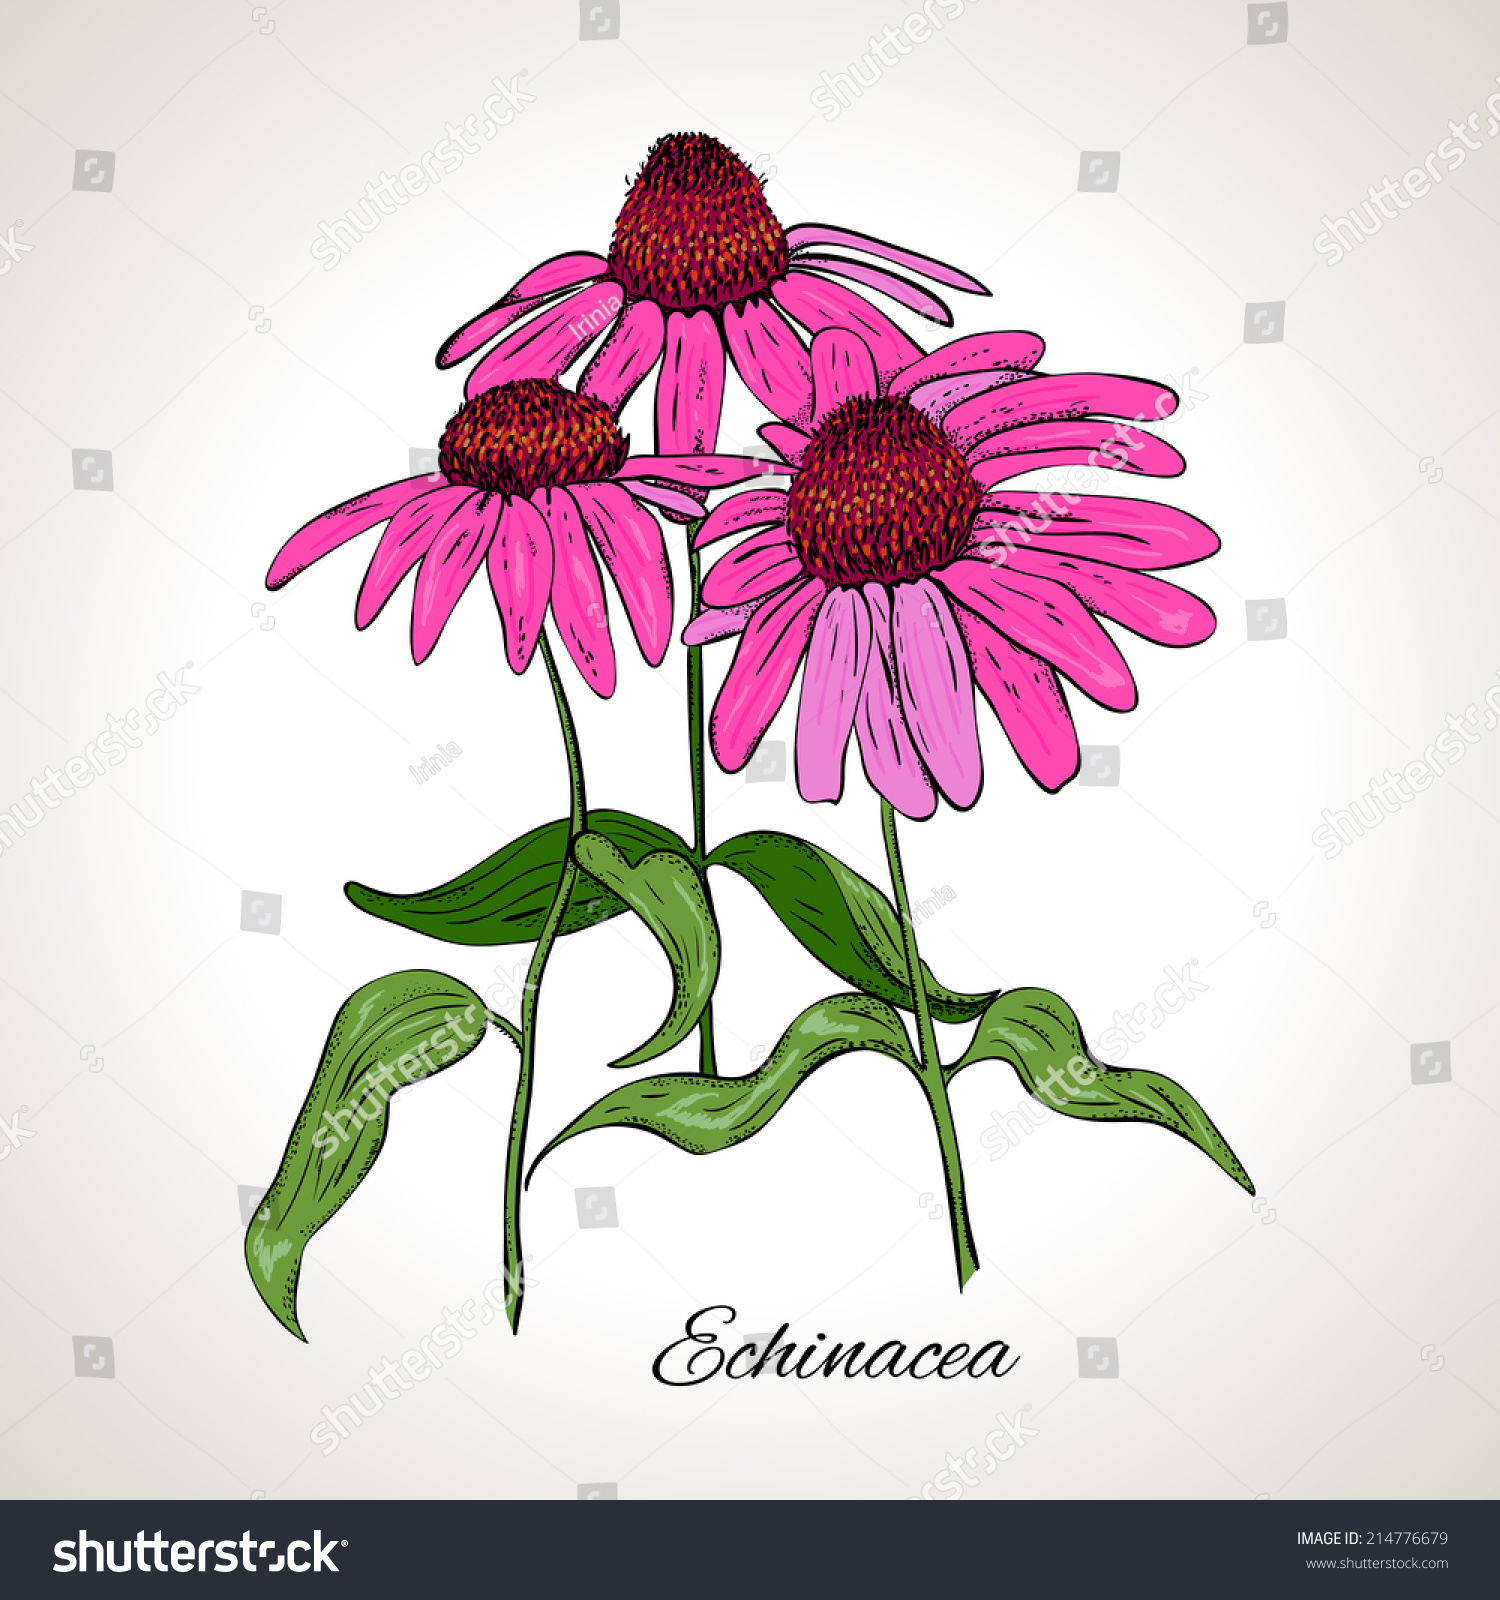 Line Drawing Coneflower : Colored drawing plant echinacea stock vector